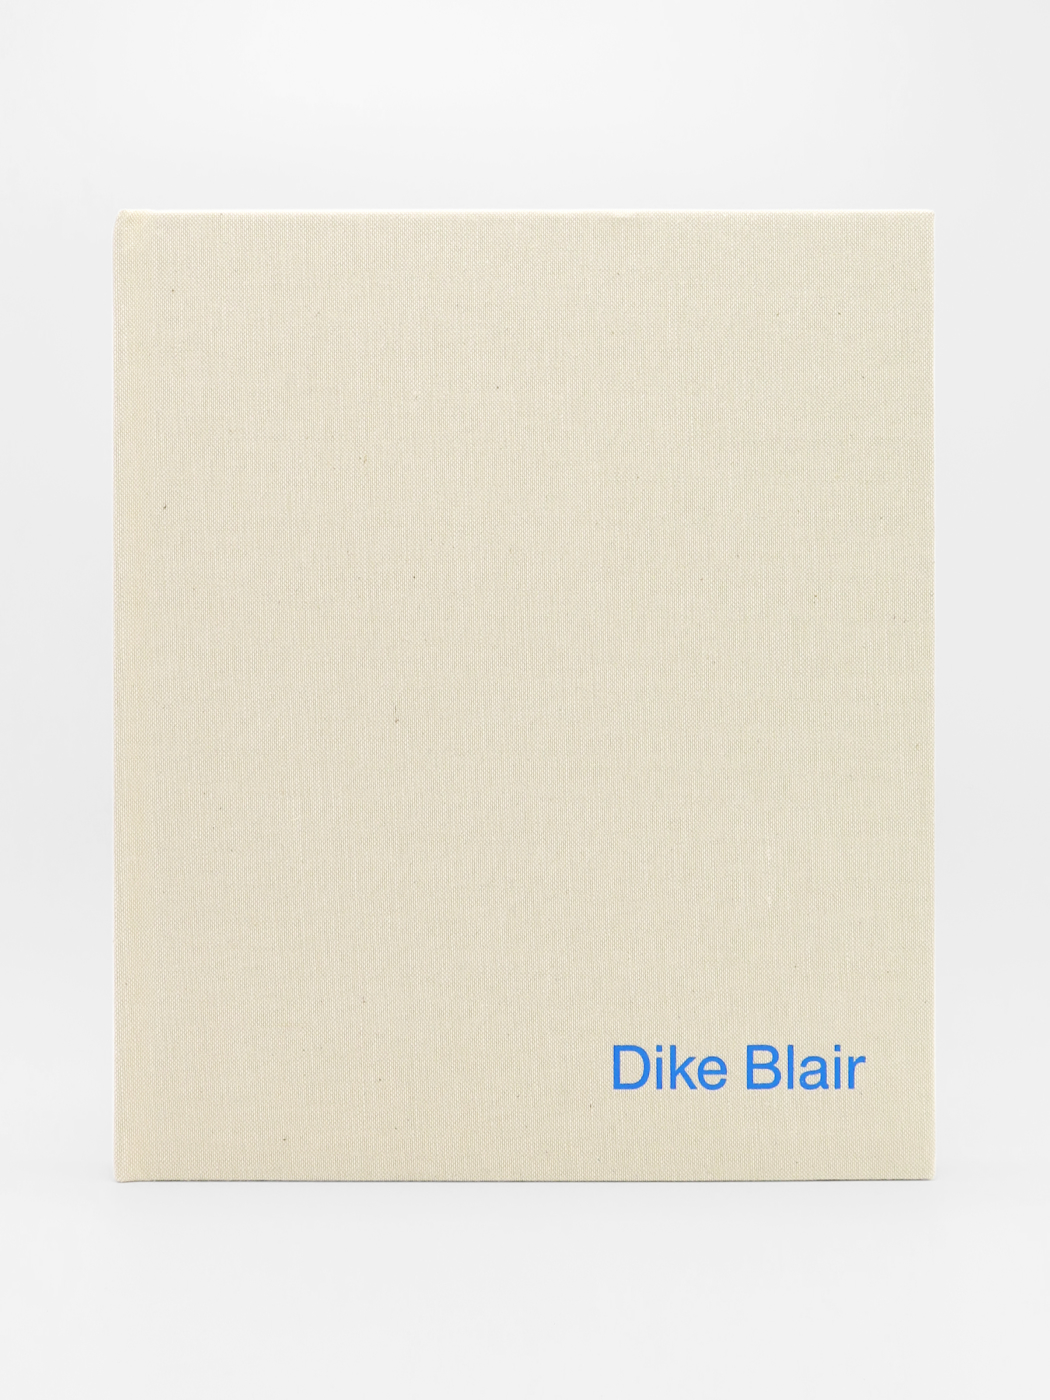 Dike Blair, Drawings Special Edition